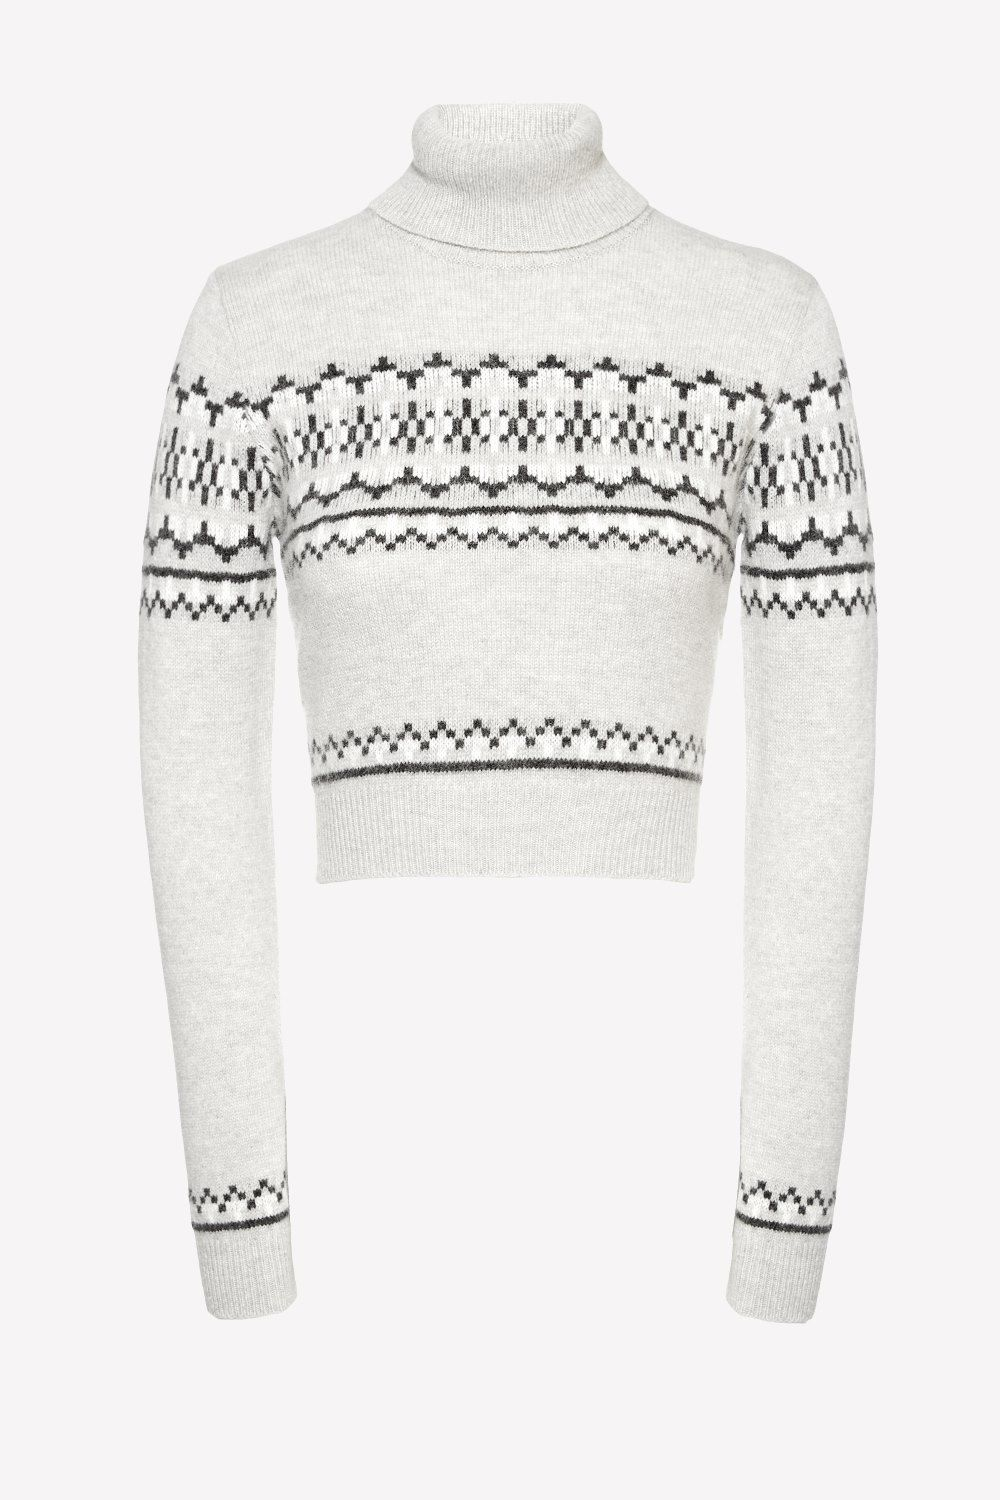 Barton Mill Fairisle Jumper - Jack Wills